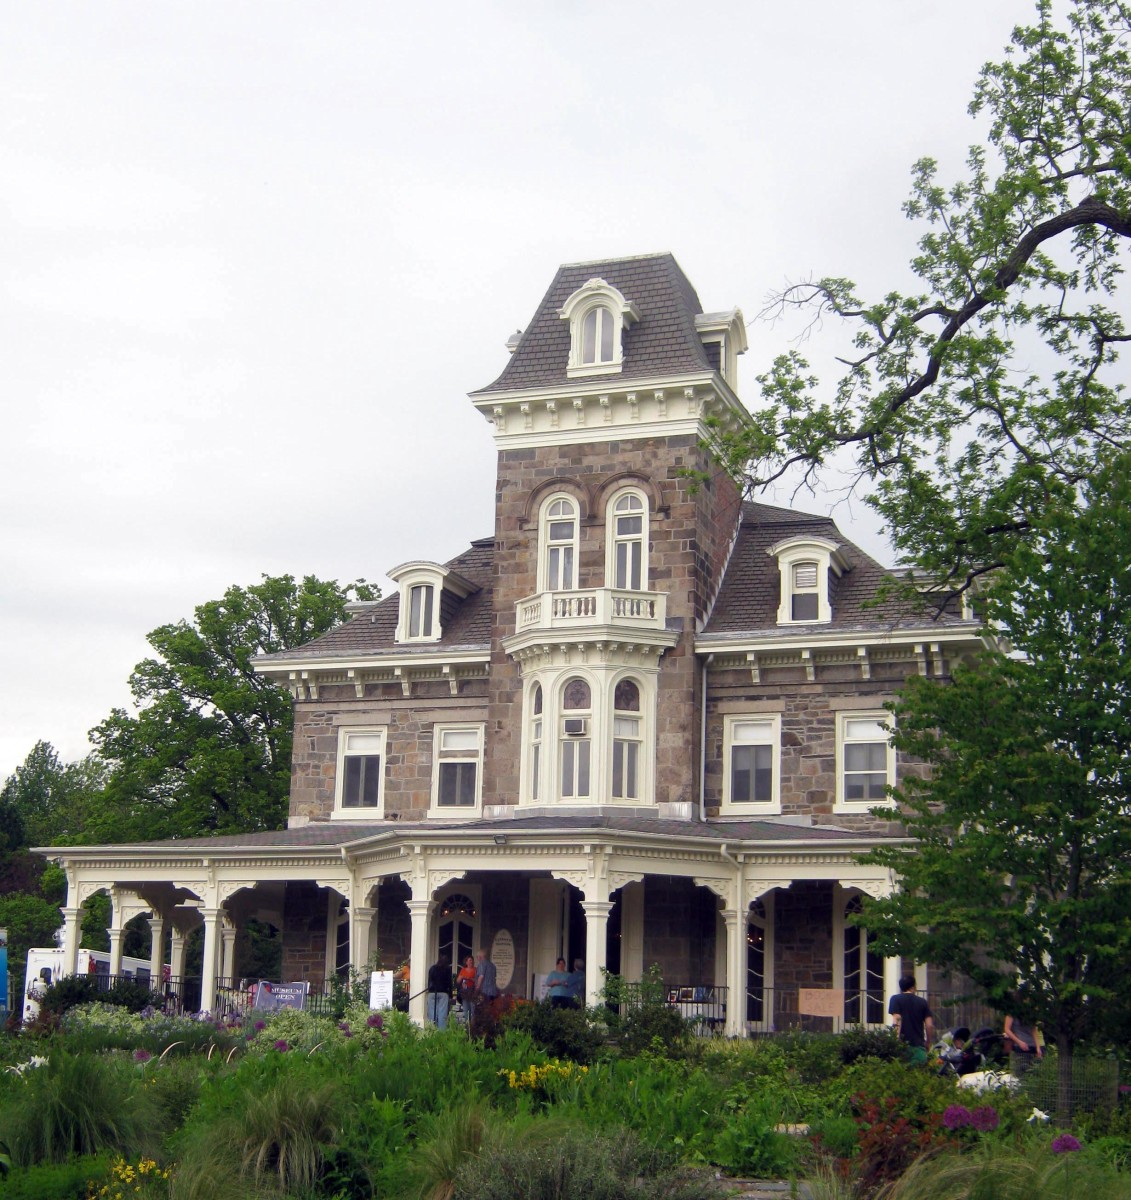 Cylburn Arboretum: Baltimore's Best Victorian Mansion and Public Garden